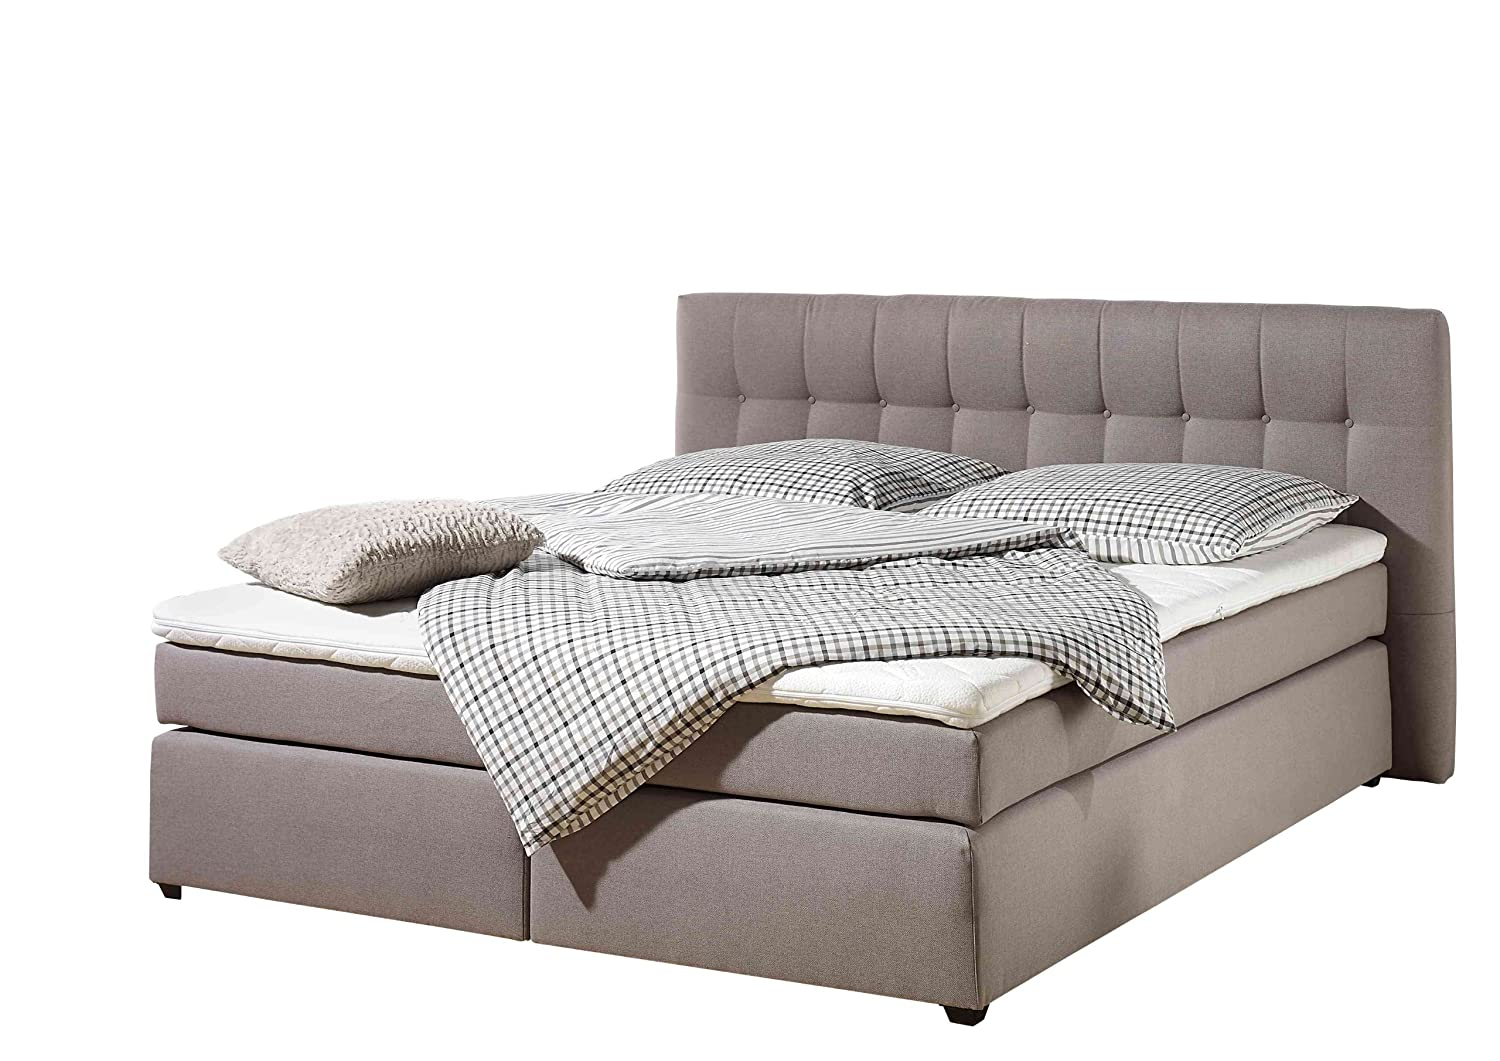 Maintal Betten 236107-3146 Boxspringbett Jeremy 180 x 200 cm inklusive Topper, taupe